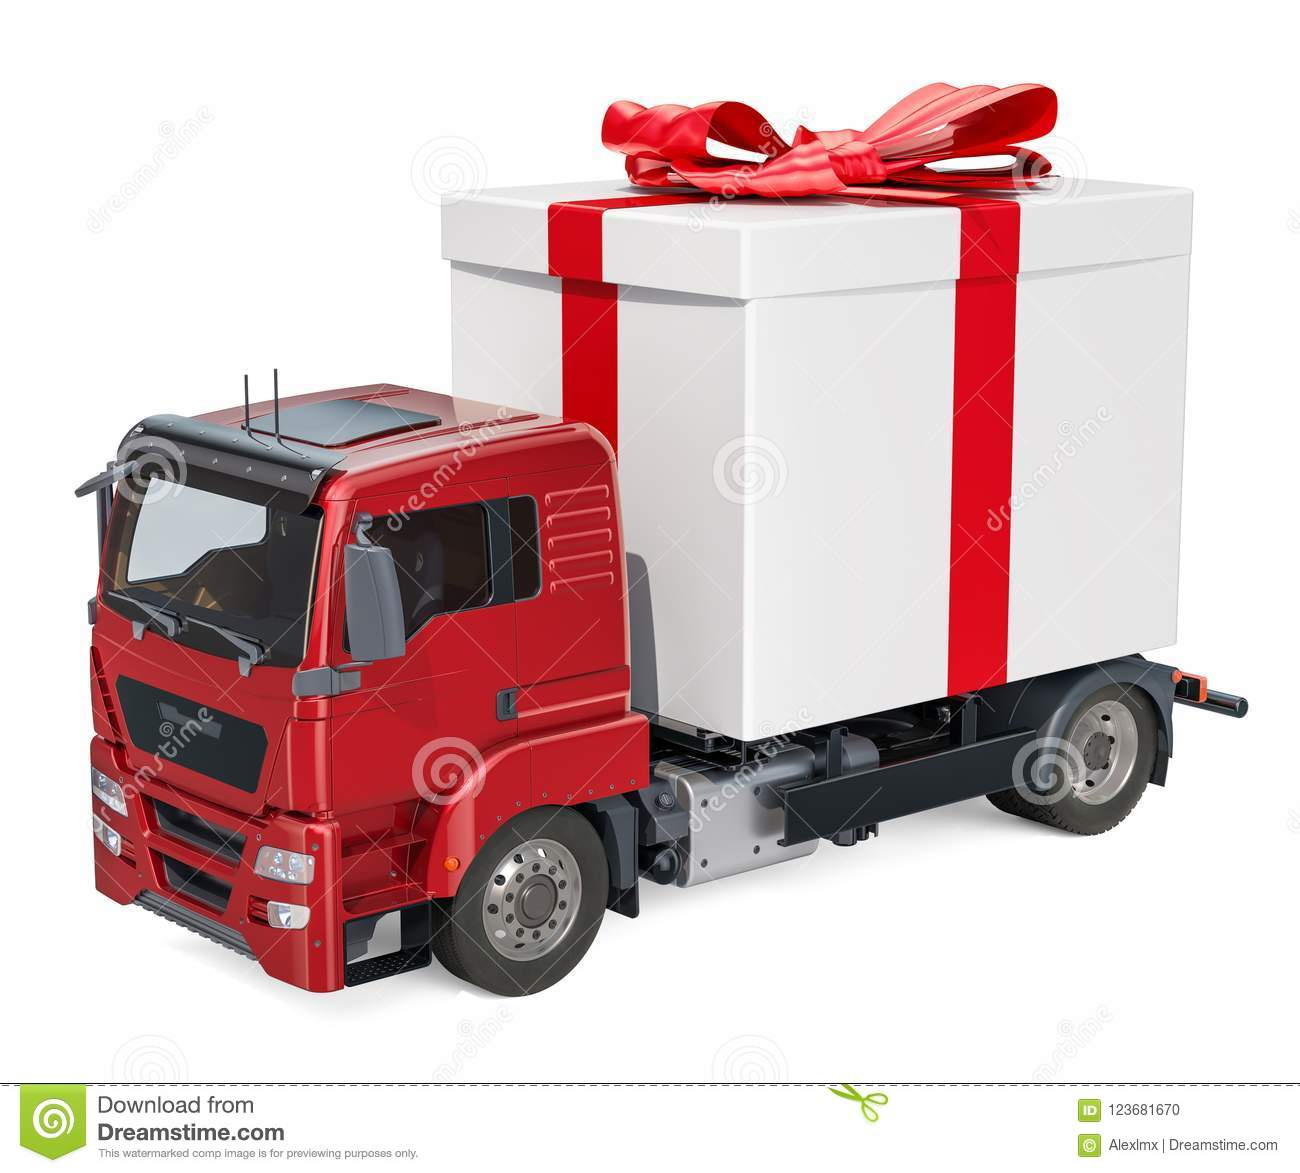 Truck with gift box. Gift delivery concept, 3D rendering